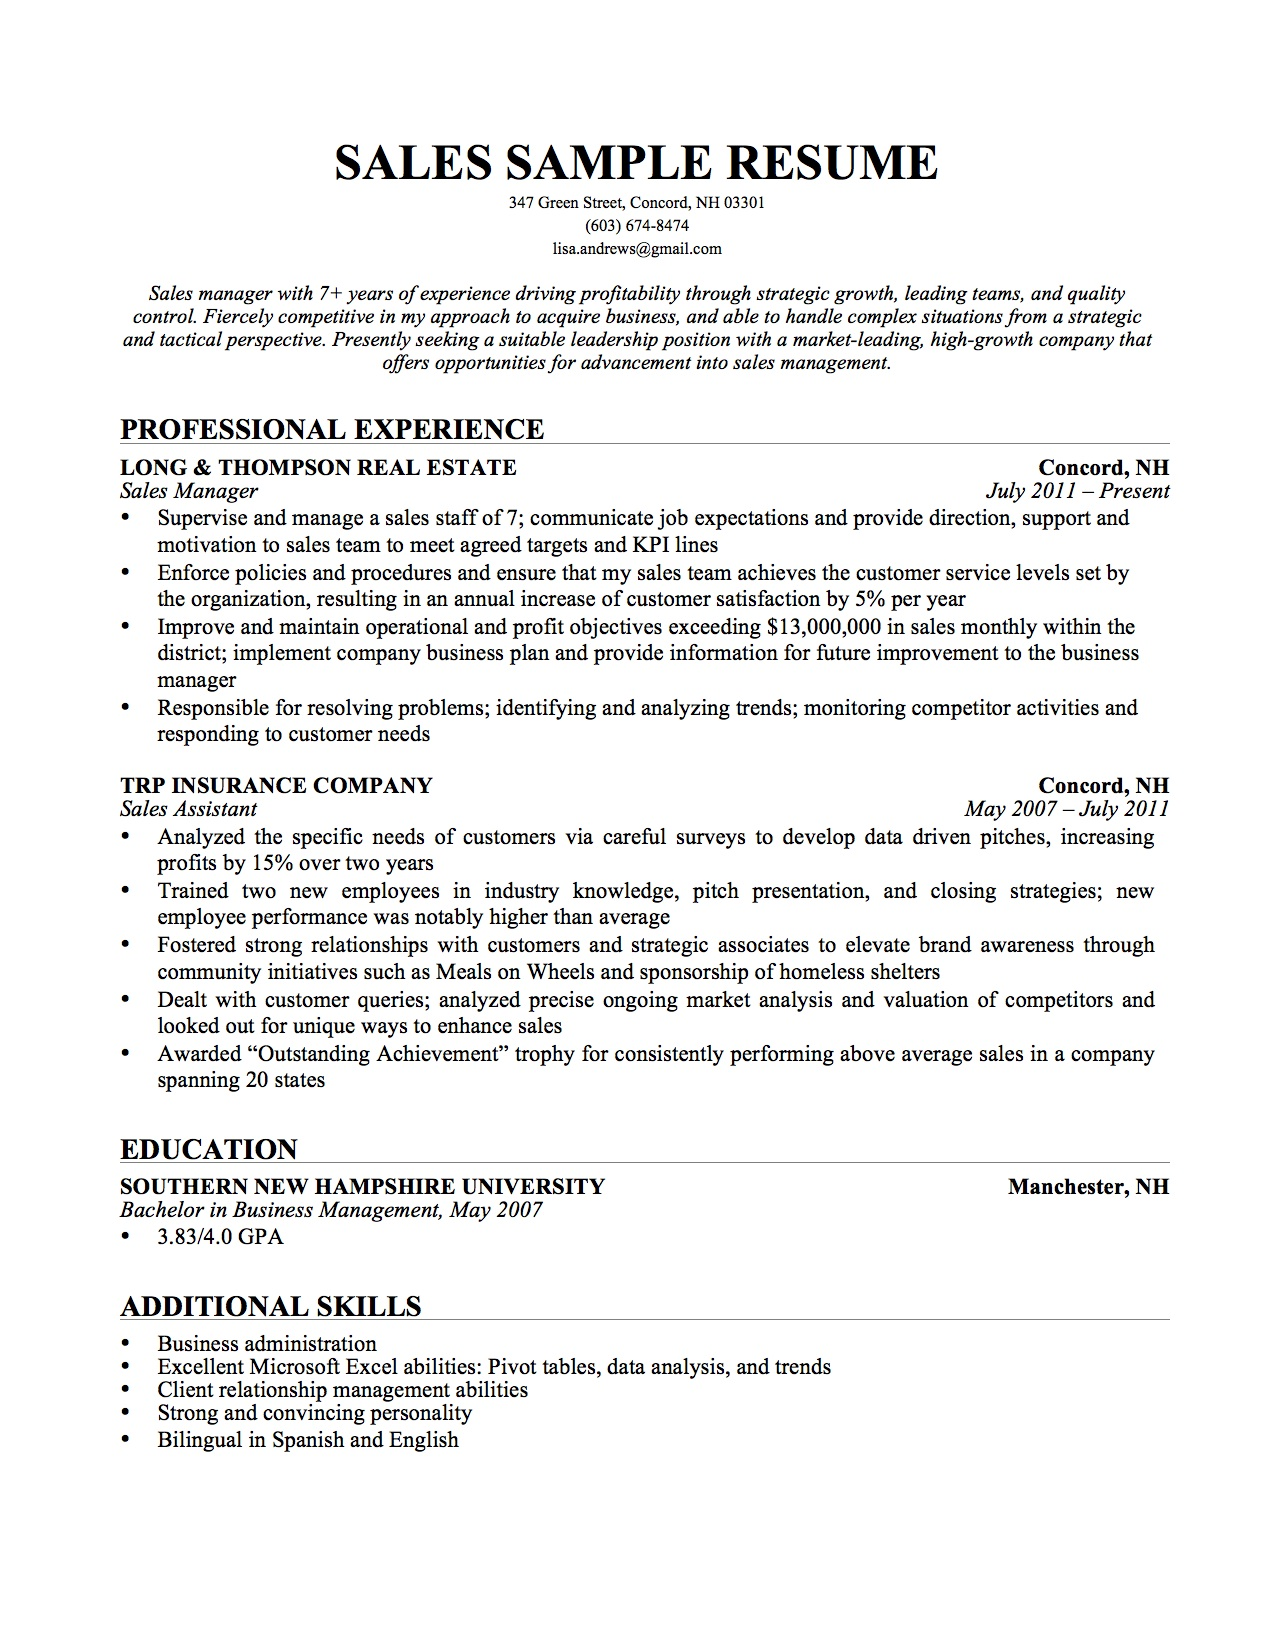 Sample Essay About Happiness Insurance Sales Resume Sample Sample Essay About Happiness